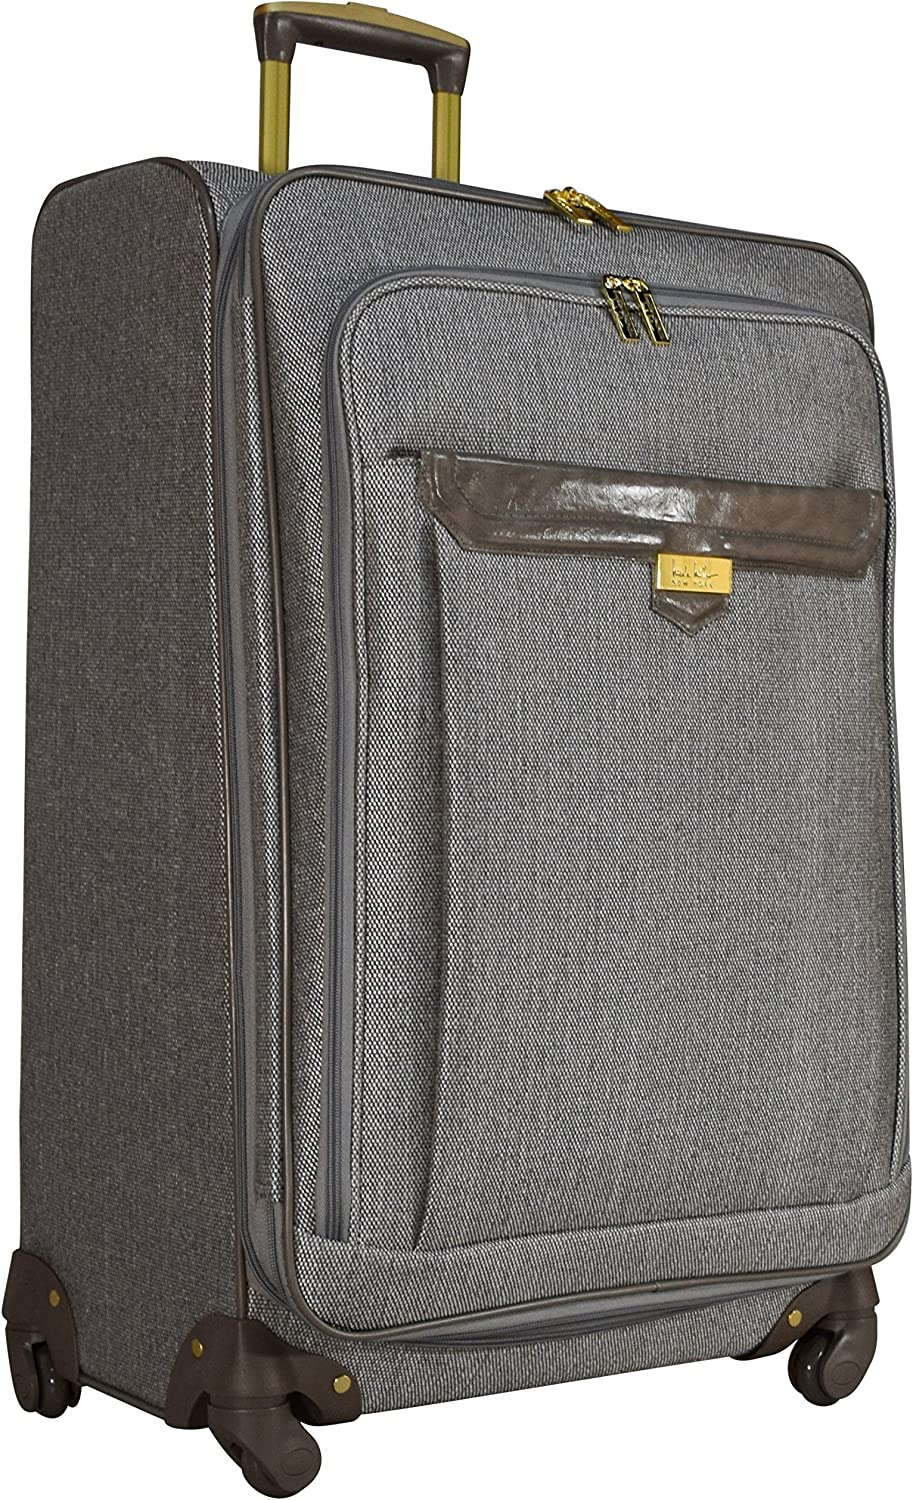 Nicole Miller Designer Luggage Collection – Expandable 24 Inch Softside Bag – Durable Mid-sized Lightweight Checked Suitcase with 4-Rolling Spinner Wheels